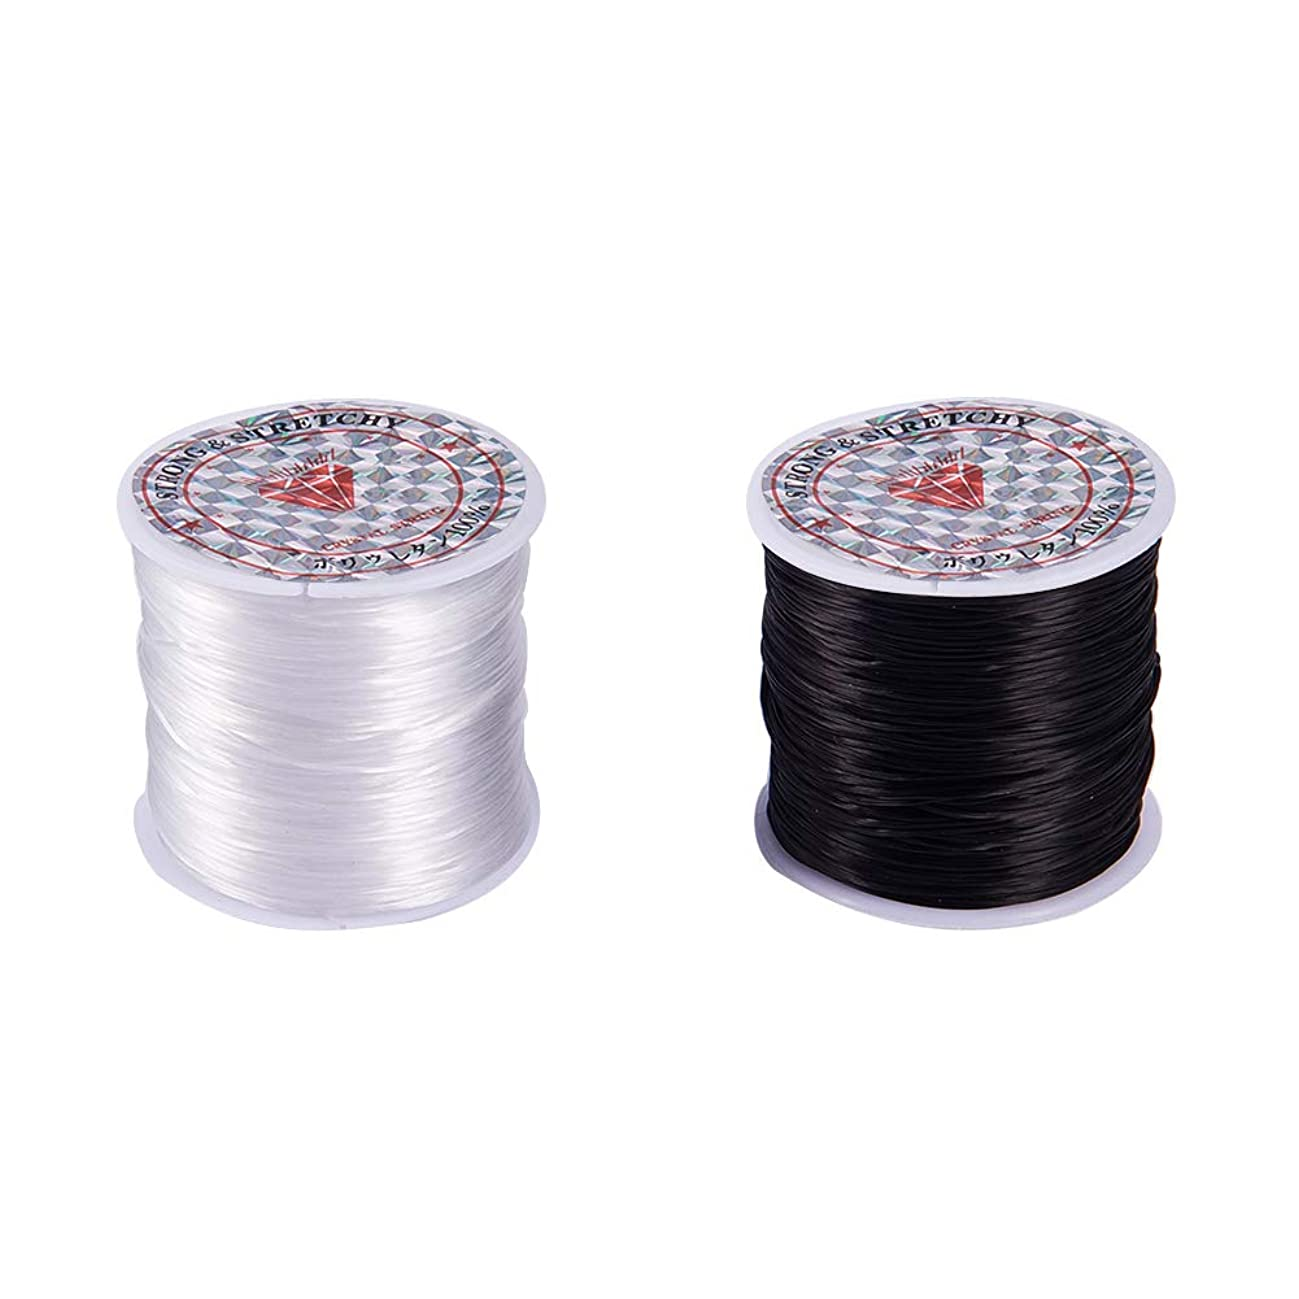 PH PandaHall 2 Roll 1mm Clear White & Black Elastic Stretch String Cord Jewelry Making Bracelet Beading Thread (60m/Roll)